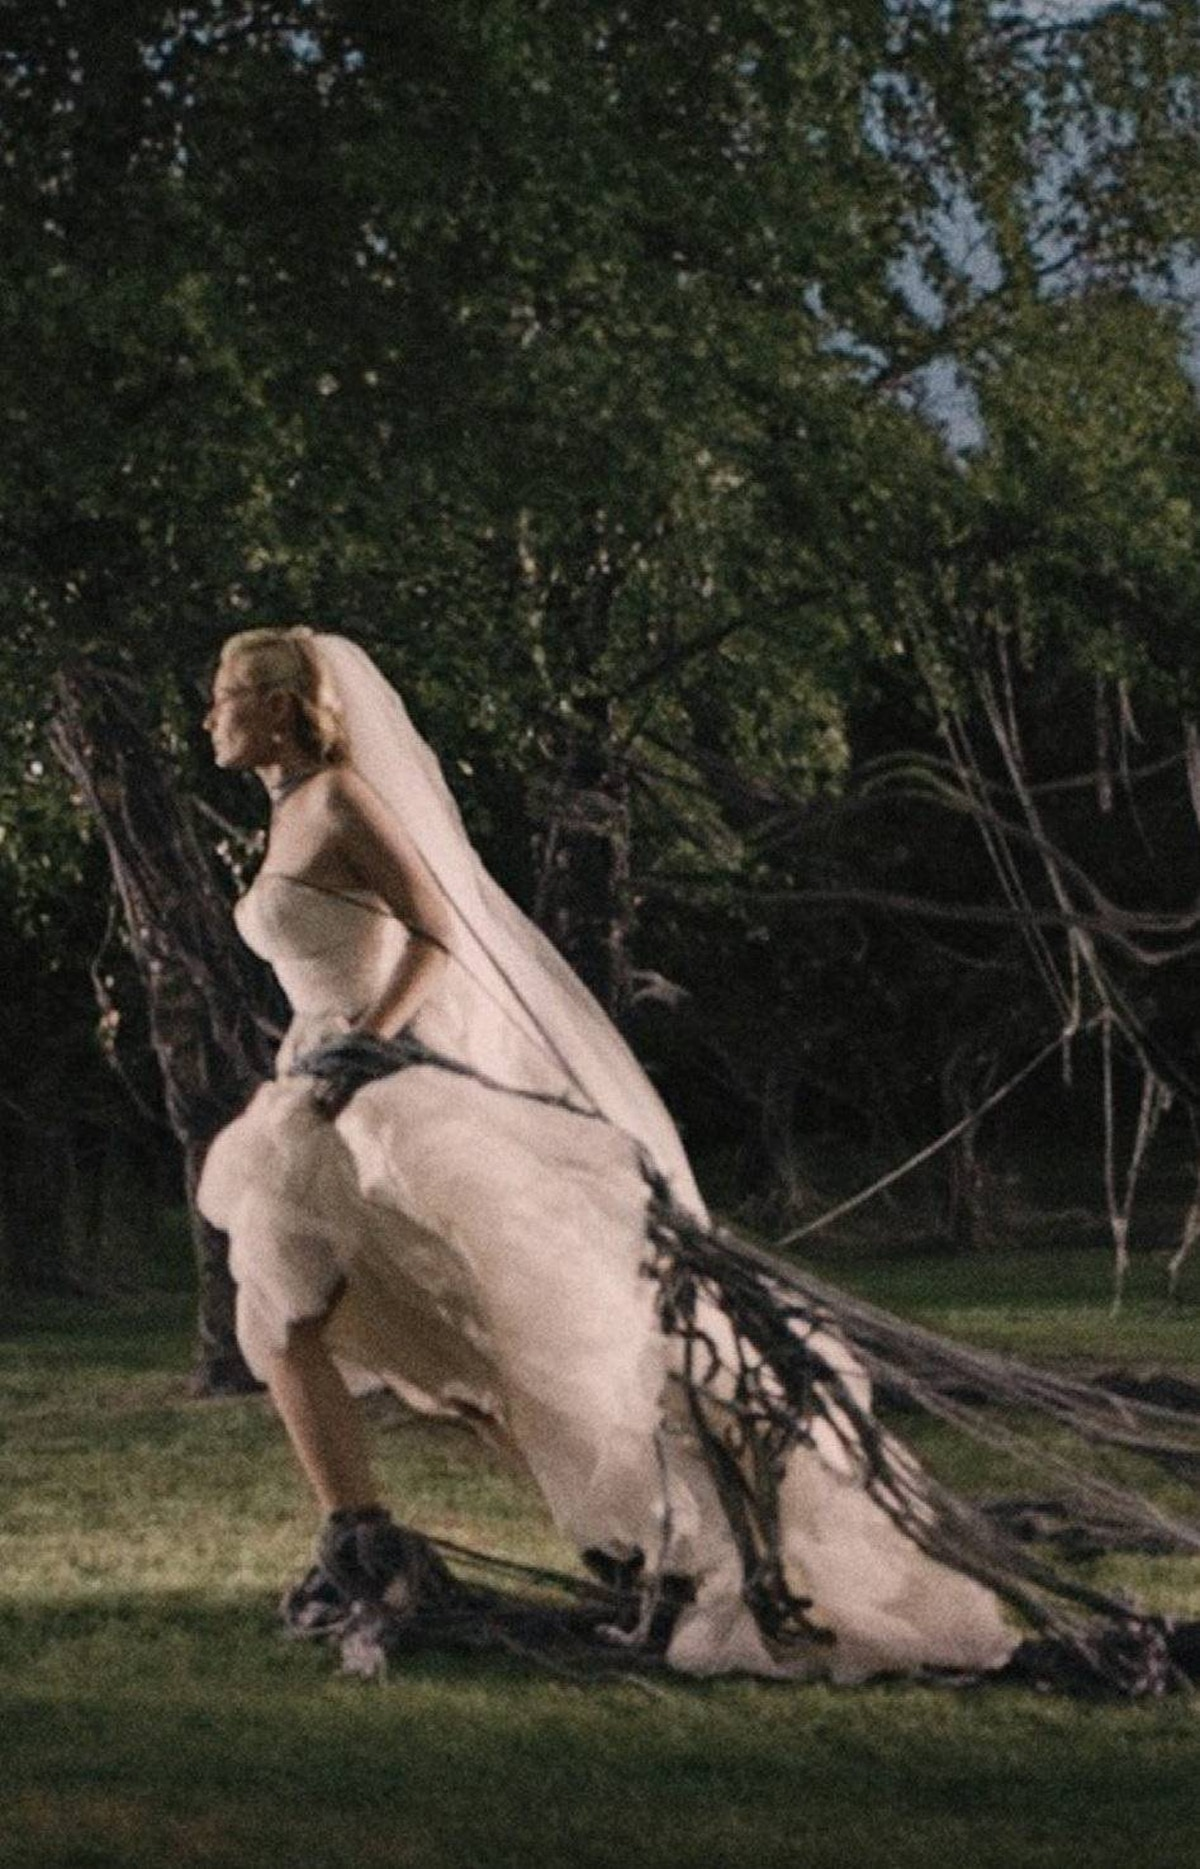 MELANCHOLIA From its hiding place behind the sun, a cerulean planet sets out on a collision course with earth; but, in the ever-contrarian hands of director Lars von Trier, the apocalypse has never looked better, the downbeat content given an intriguingly upbeat shine.